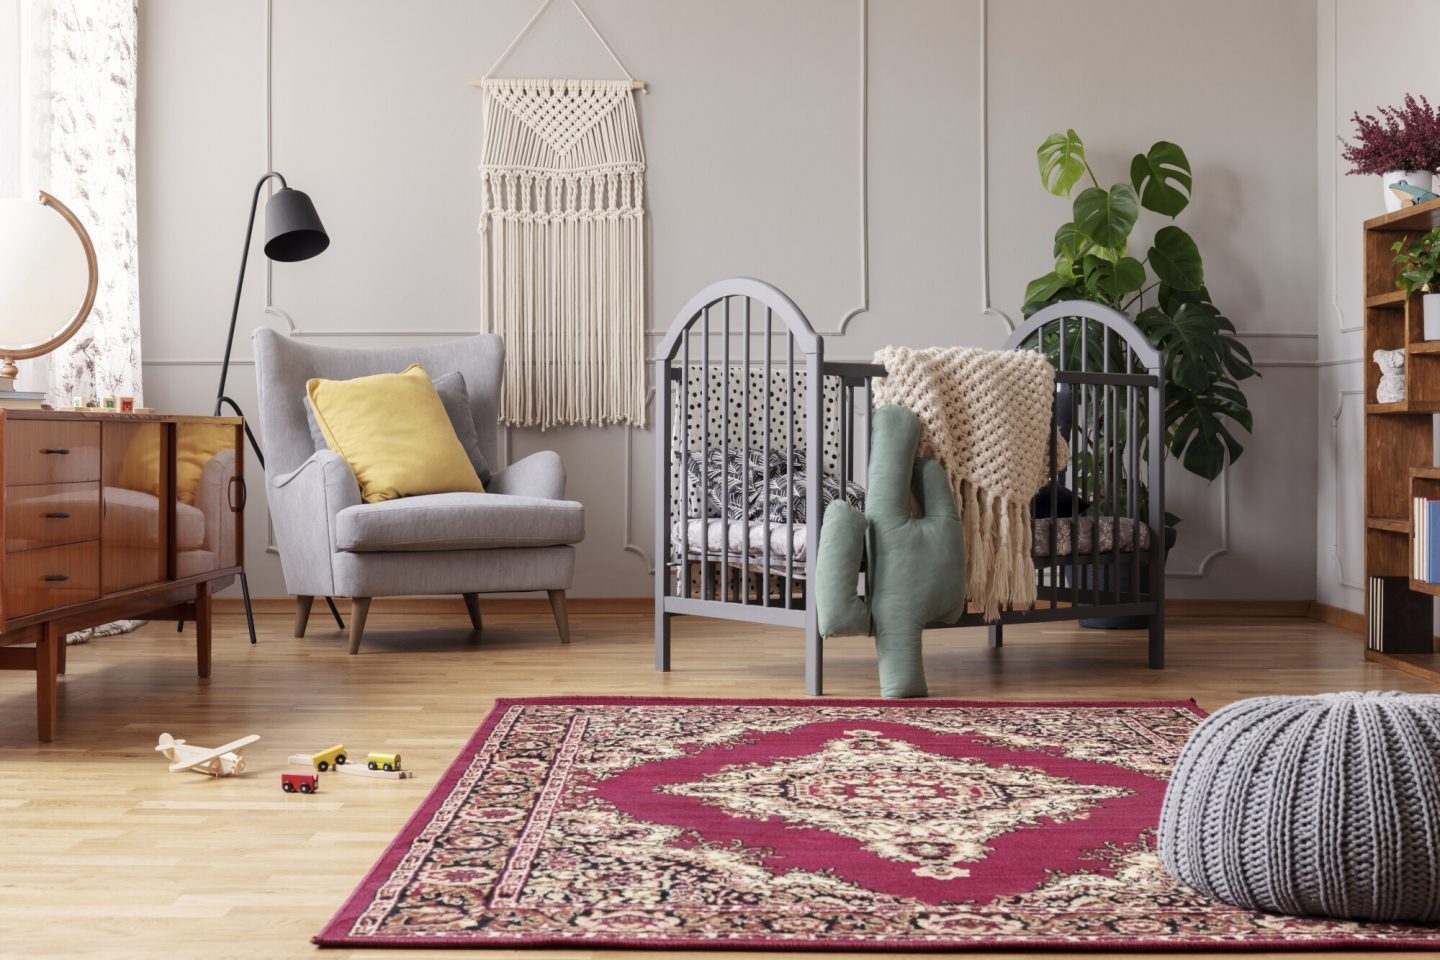 A Quick Guide on How to Clean Silk Rugs